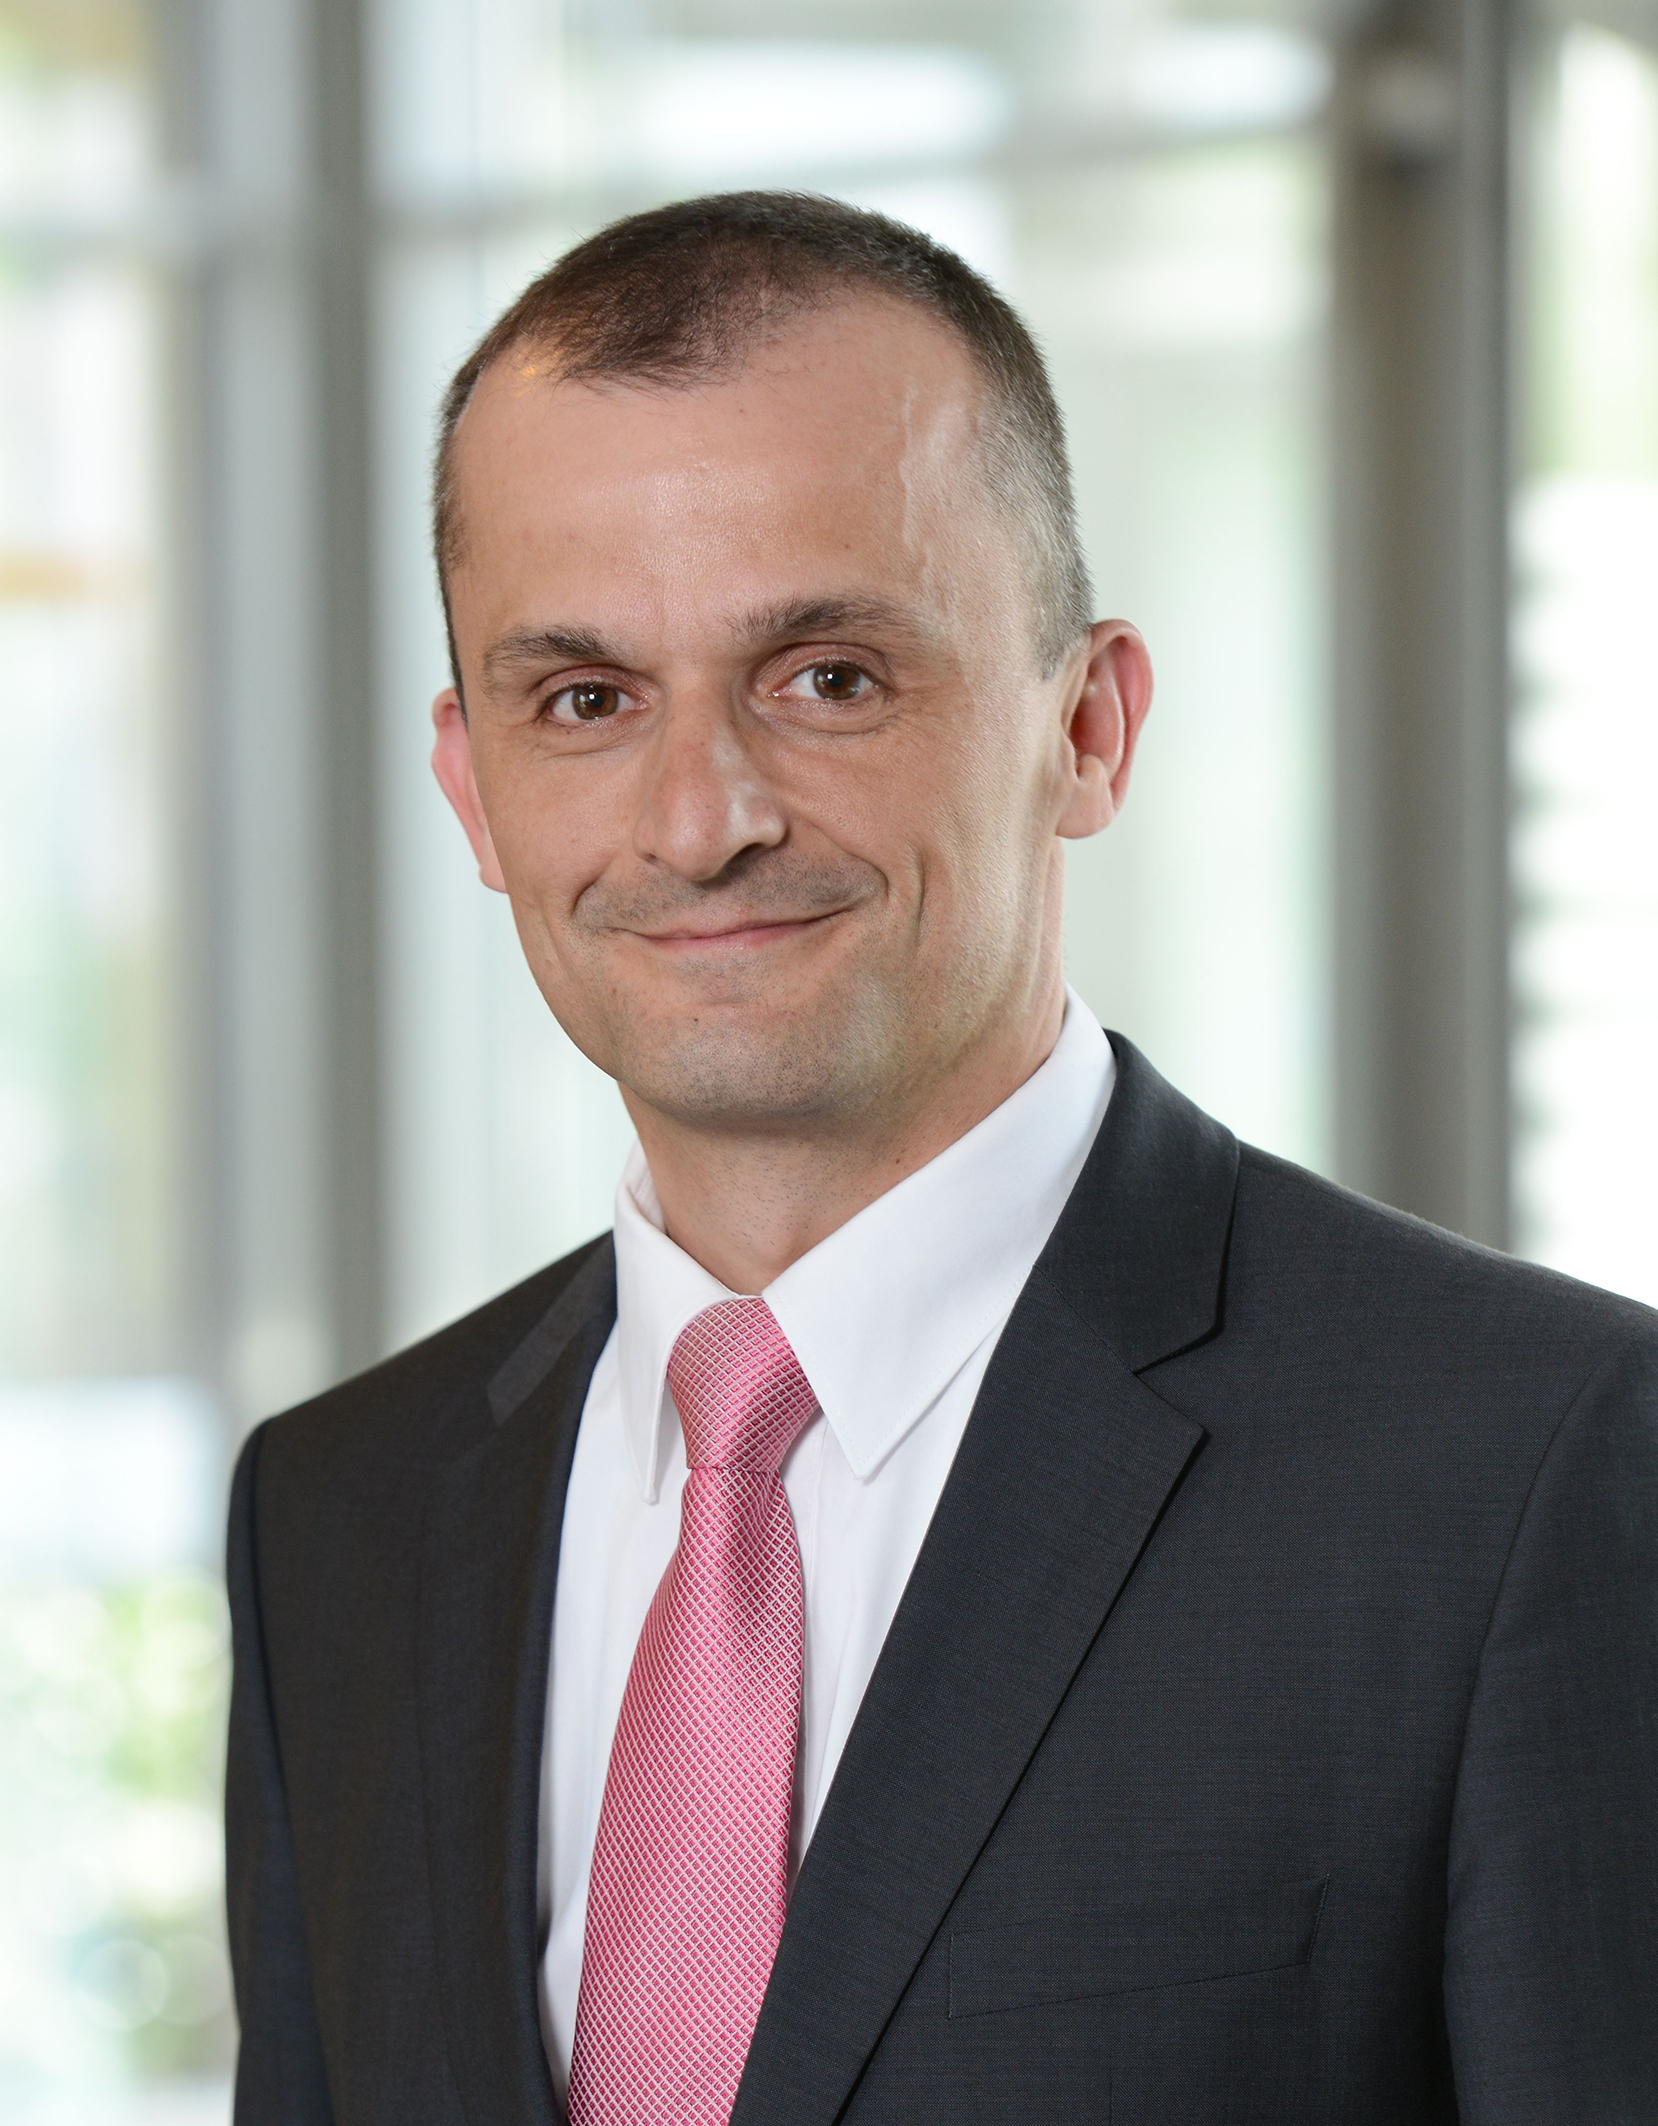 Matthias Zink Appointed New CEO Automotive at Schaeffler AG